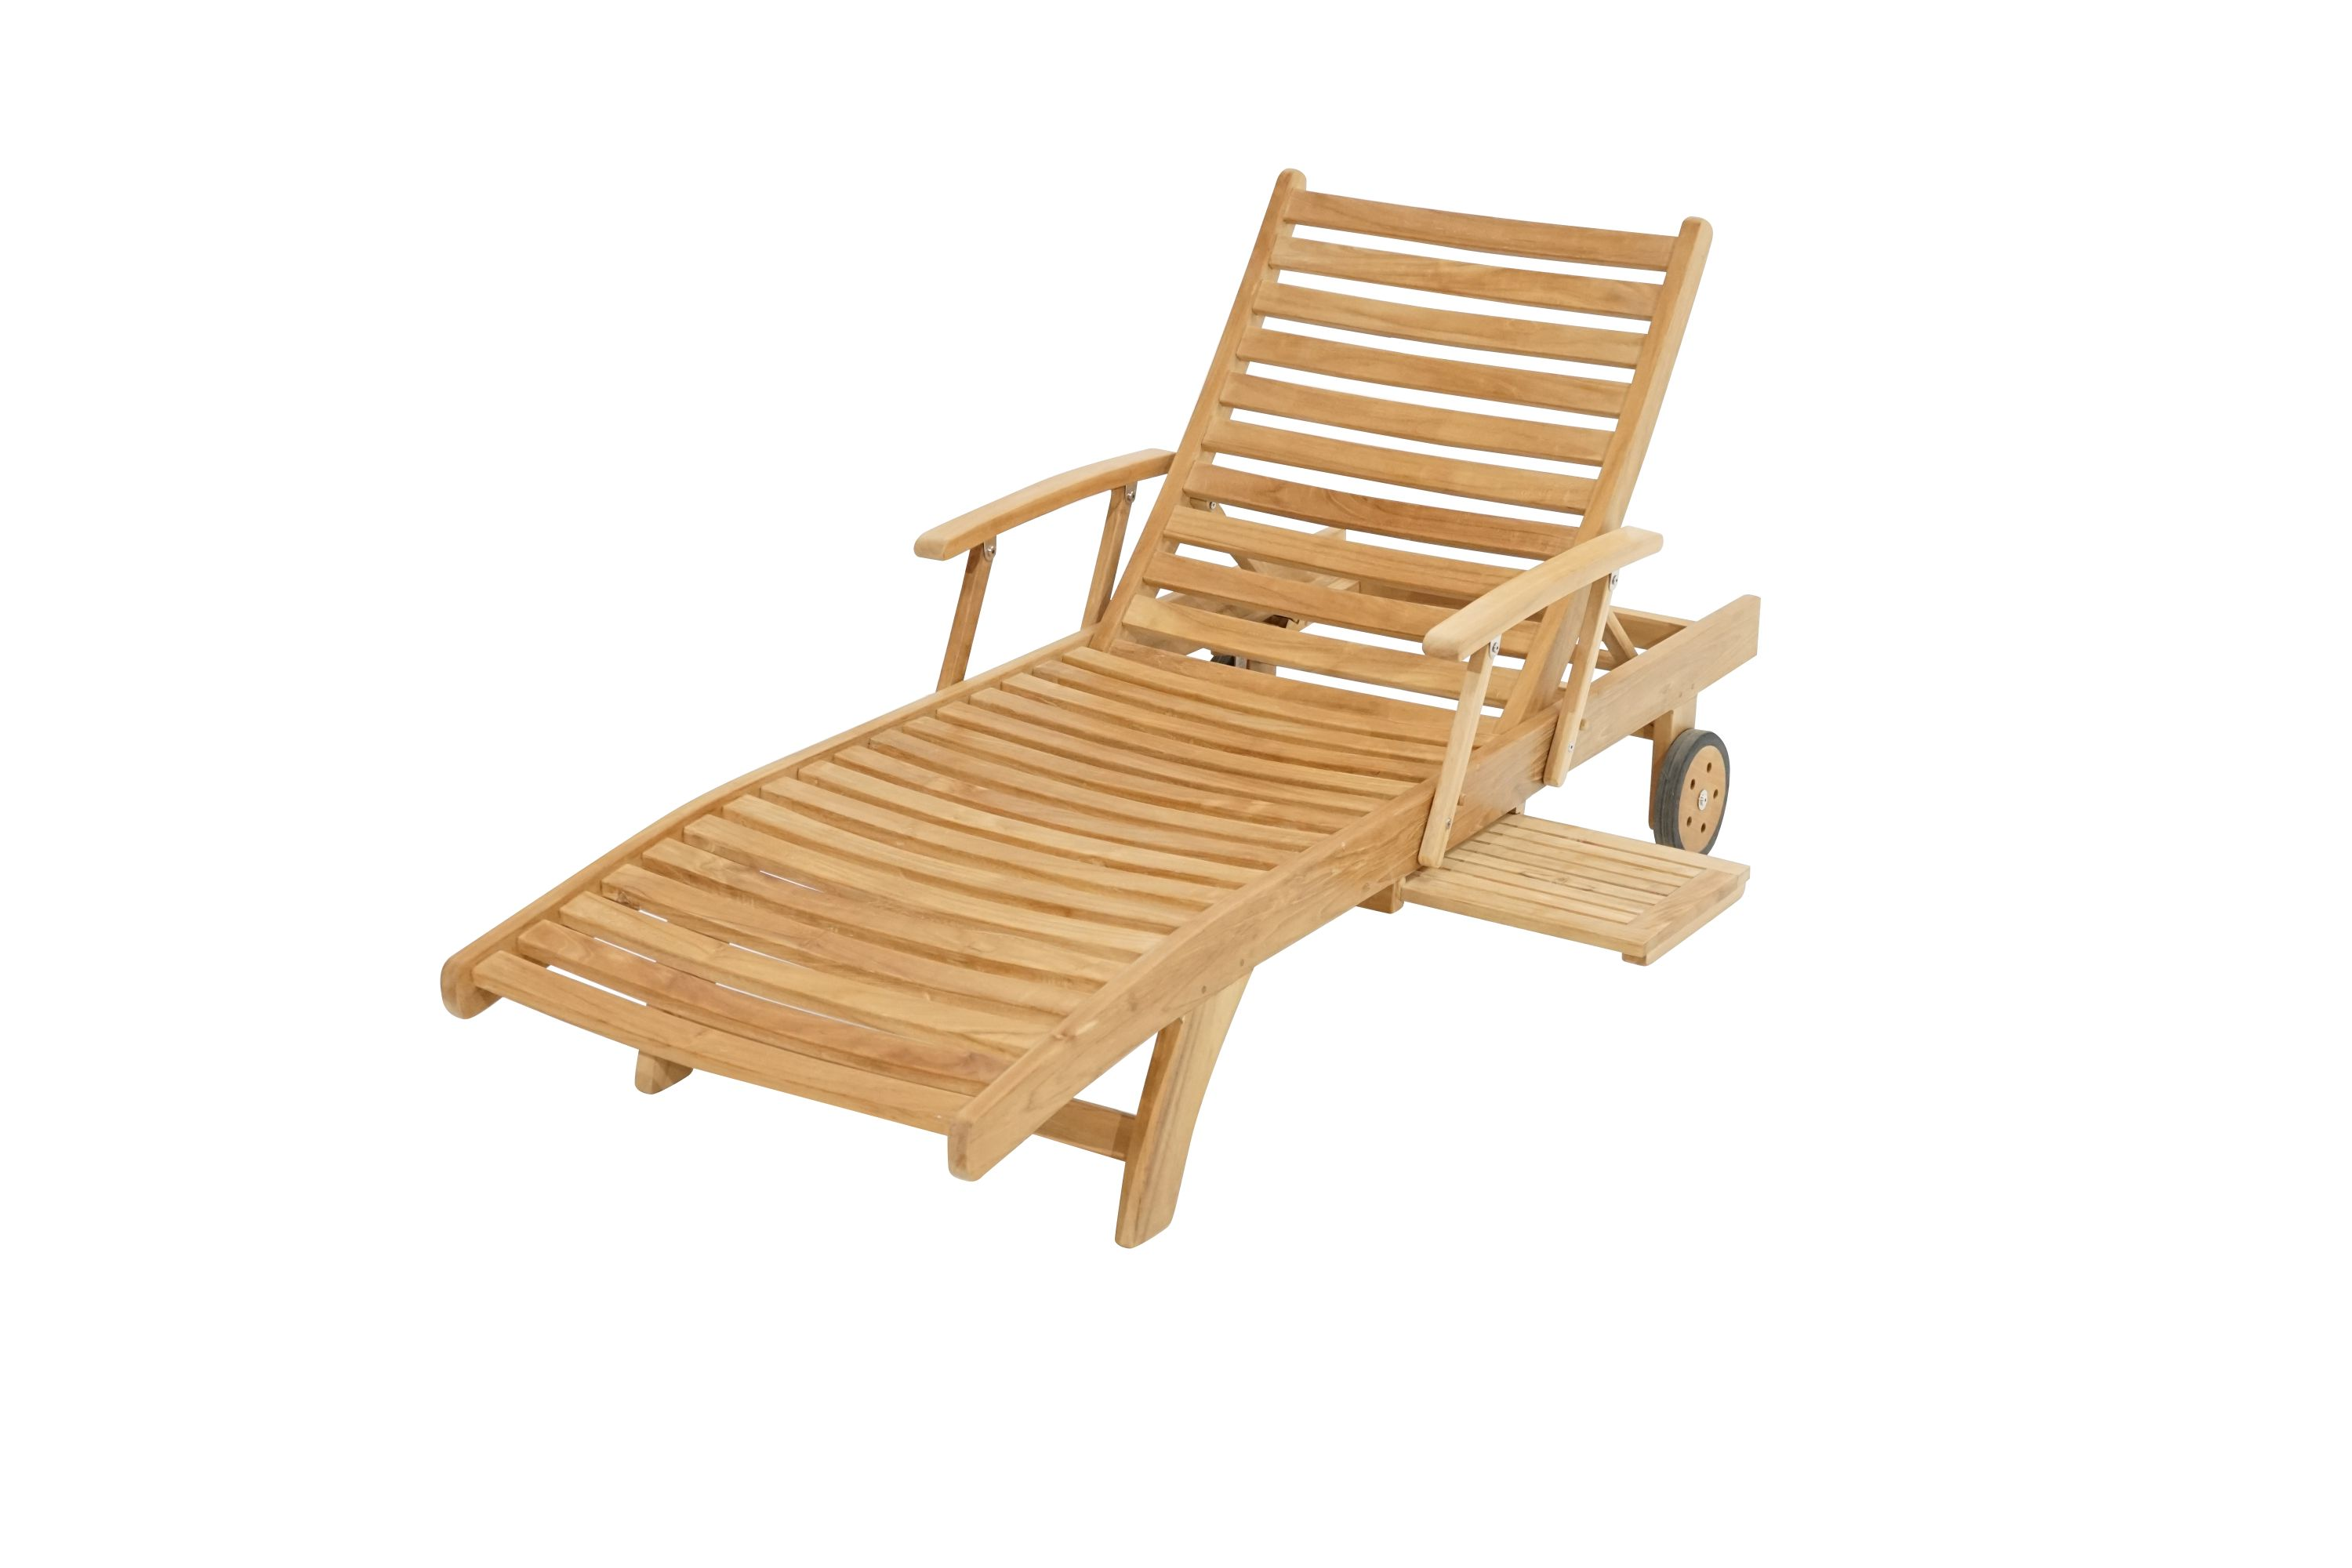 liege passat gartenliegen gartenliegen deckchairs gartenm bel gardanio ihr online. Black Bedroom Furniture Sets. Home Design Ideas